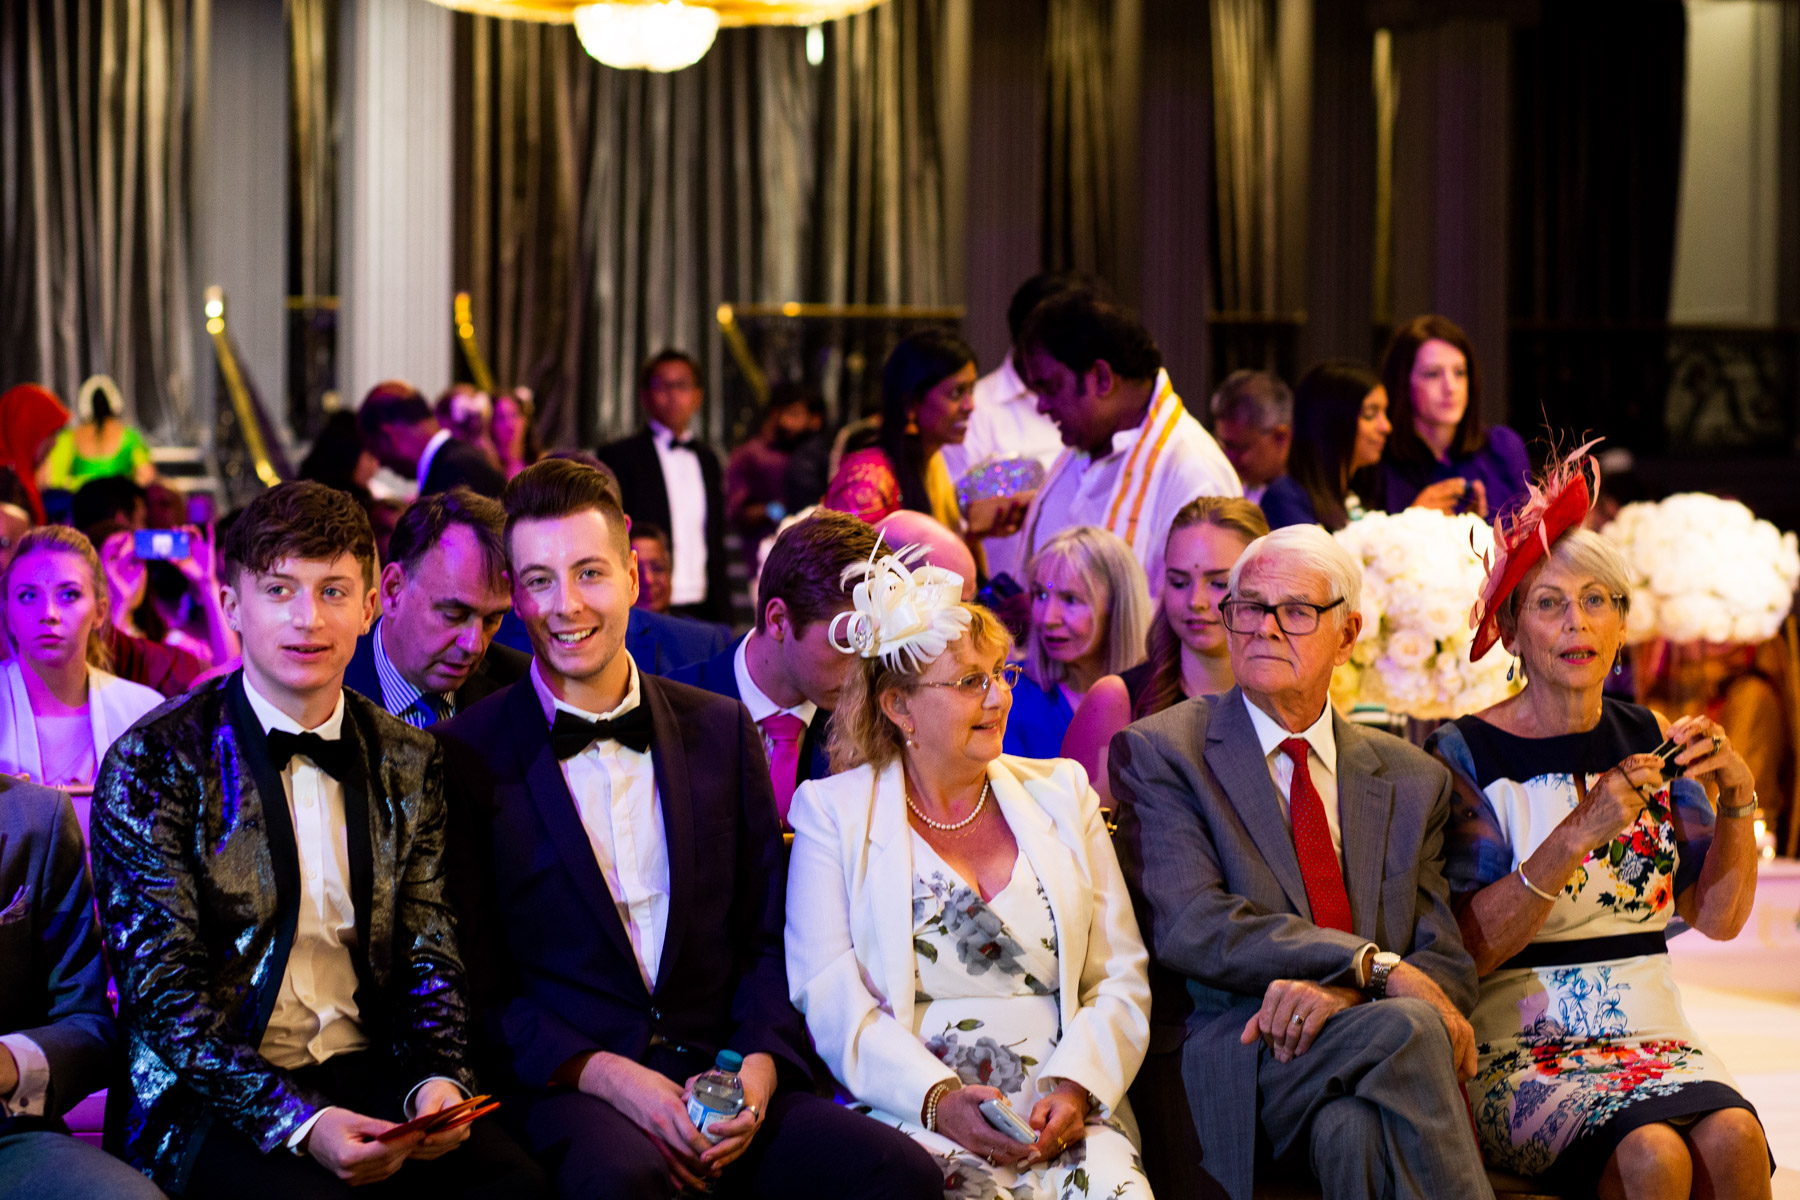 Colourful and relaxed wedding guests waiting for bride and groom